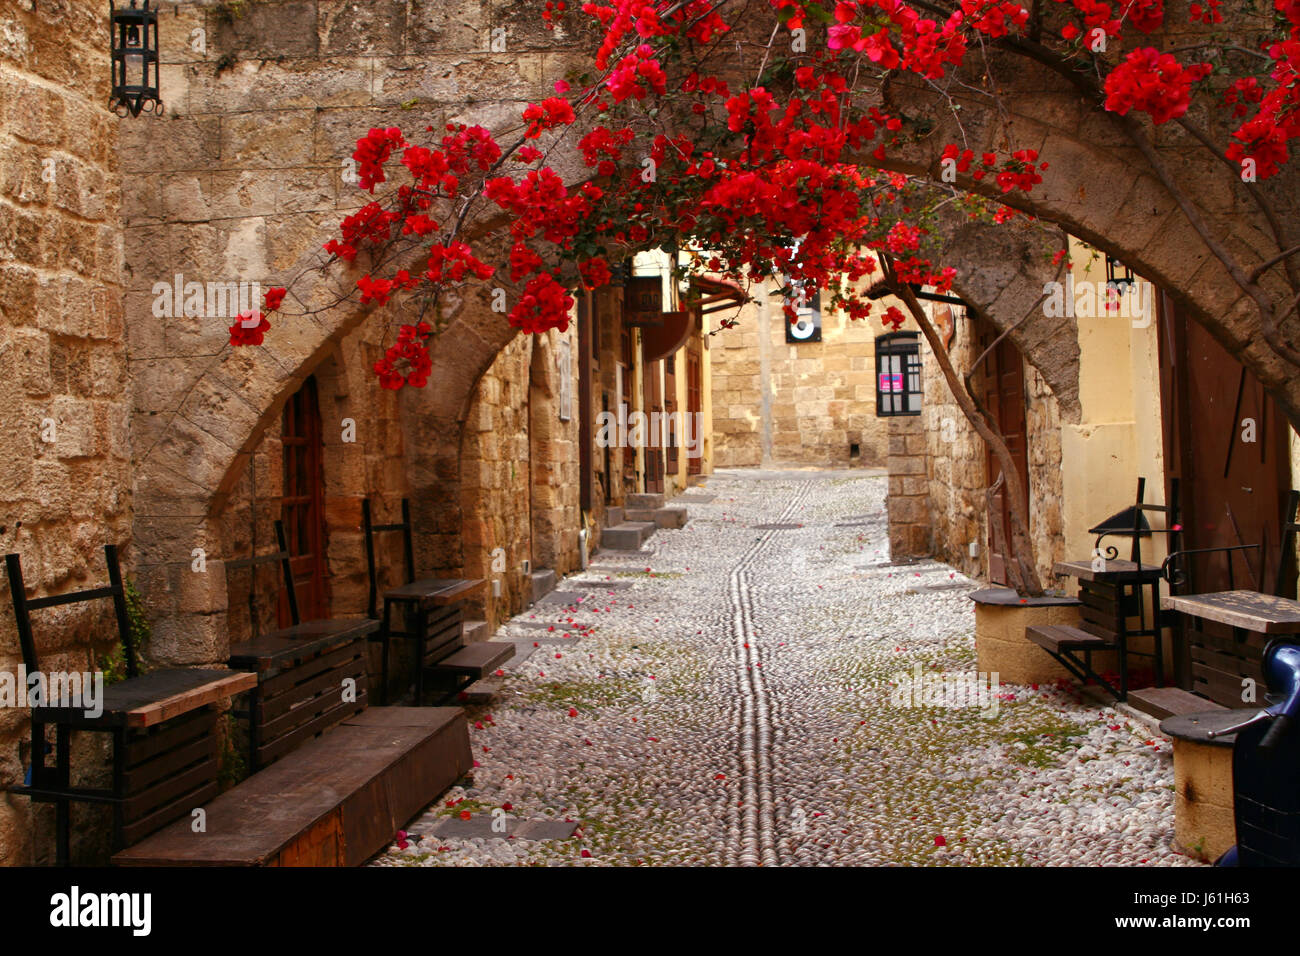 in the old town of rhodes - Stock Image